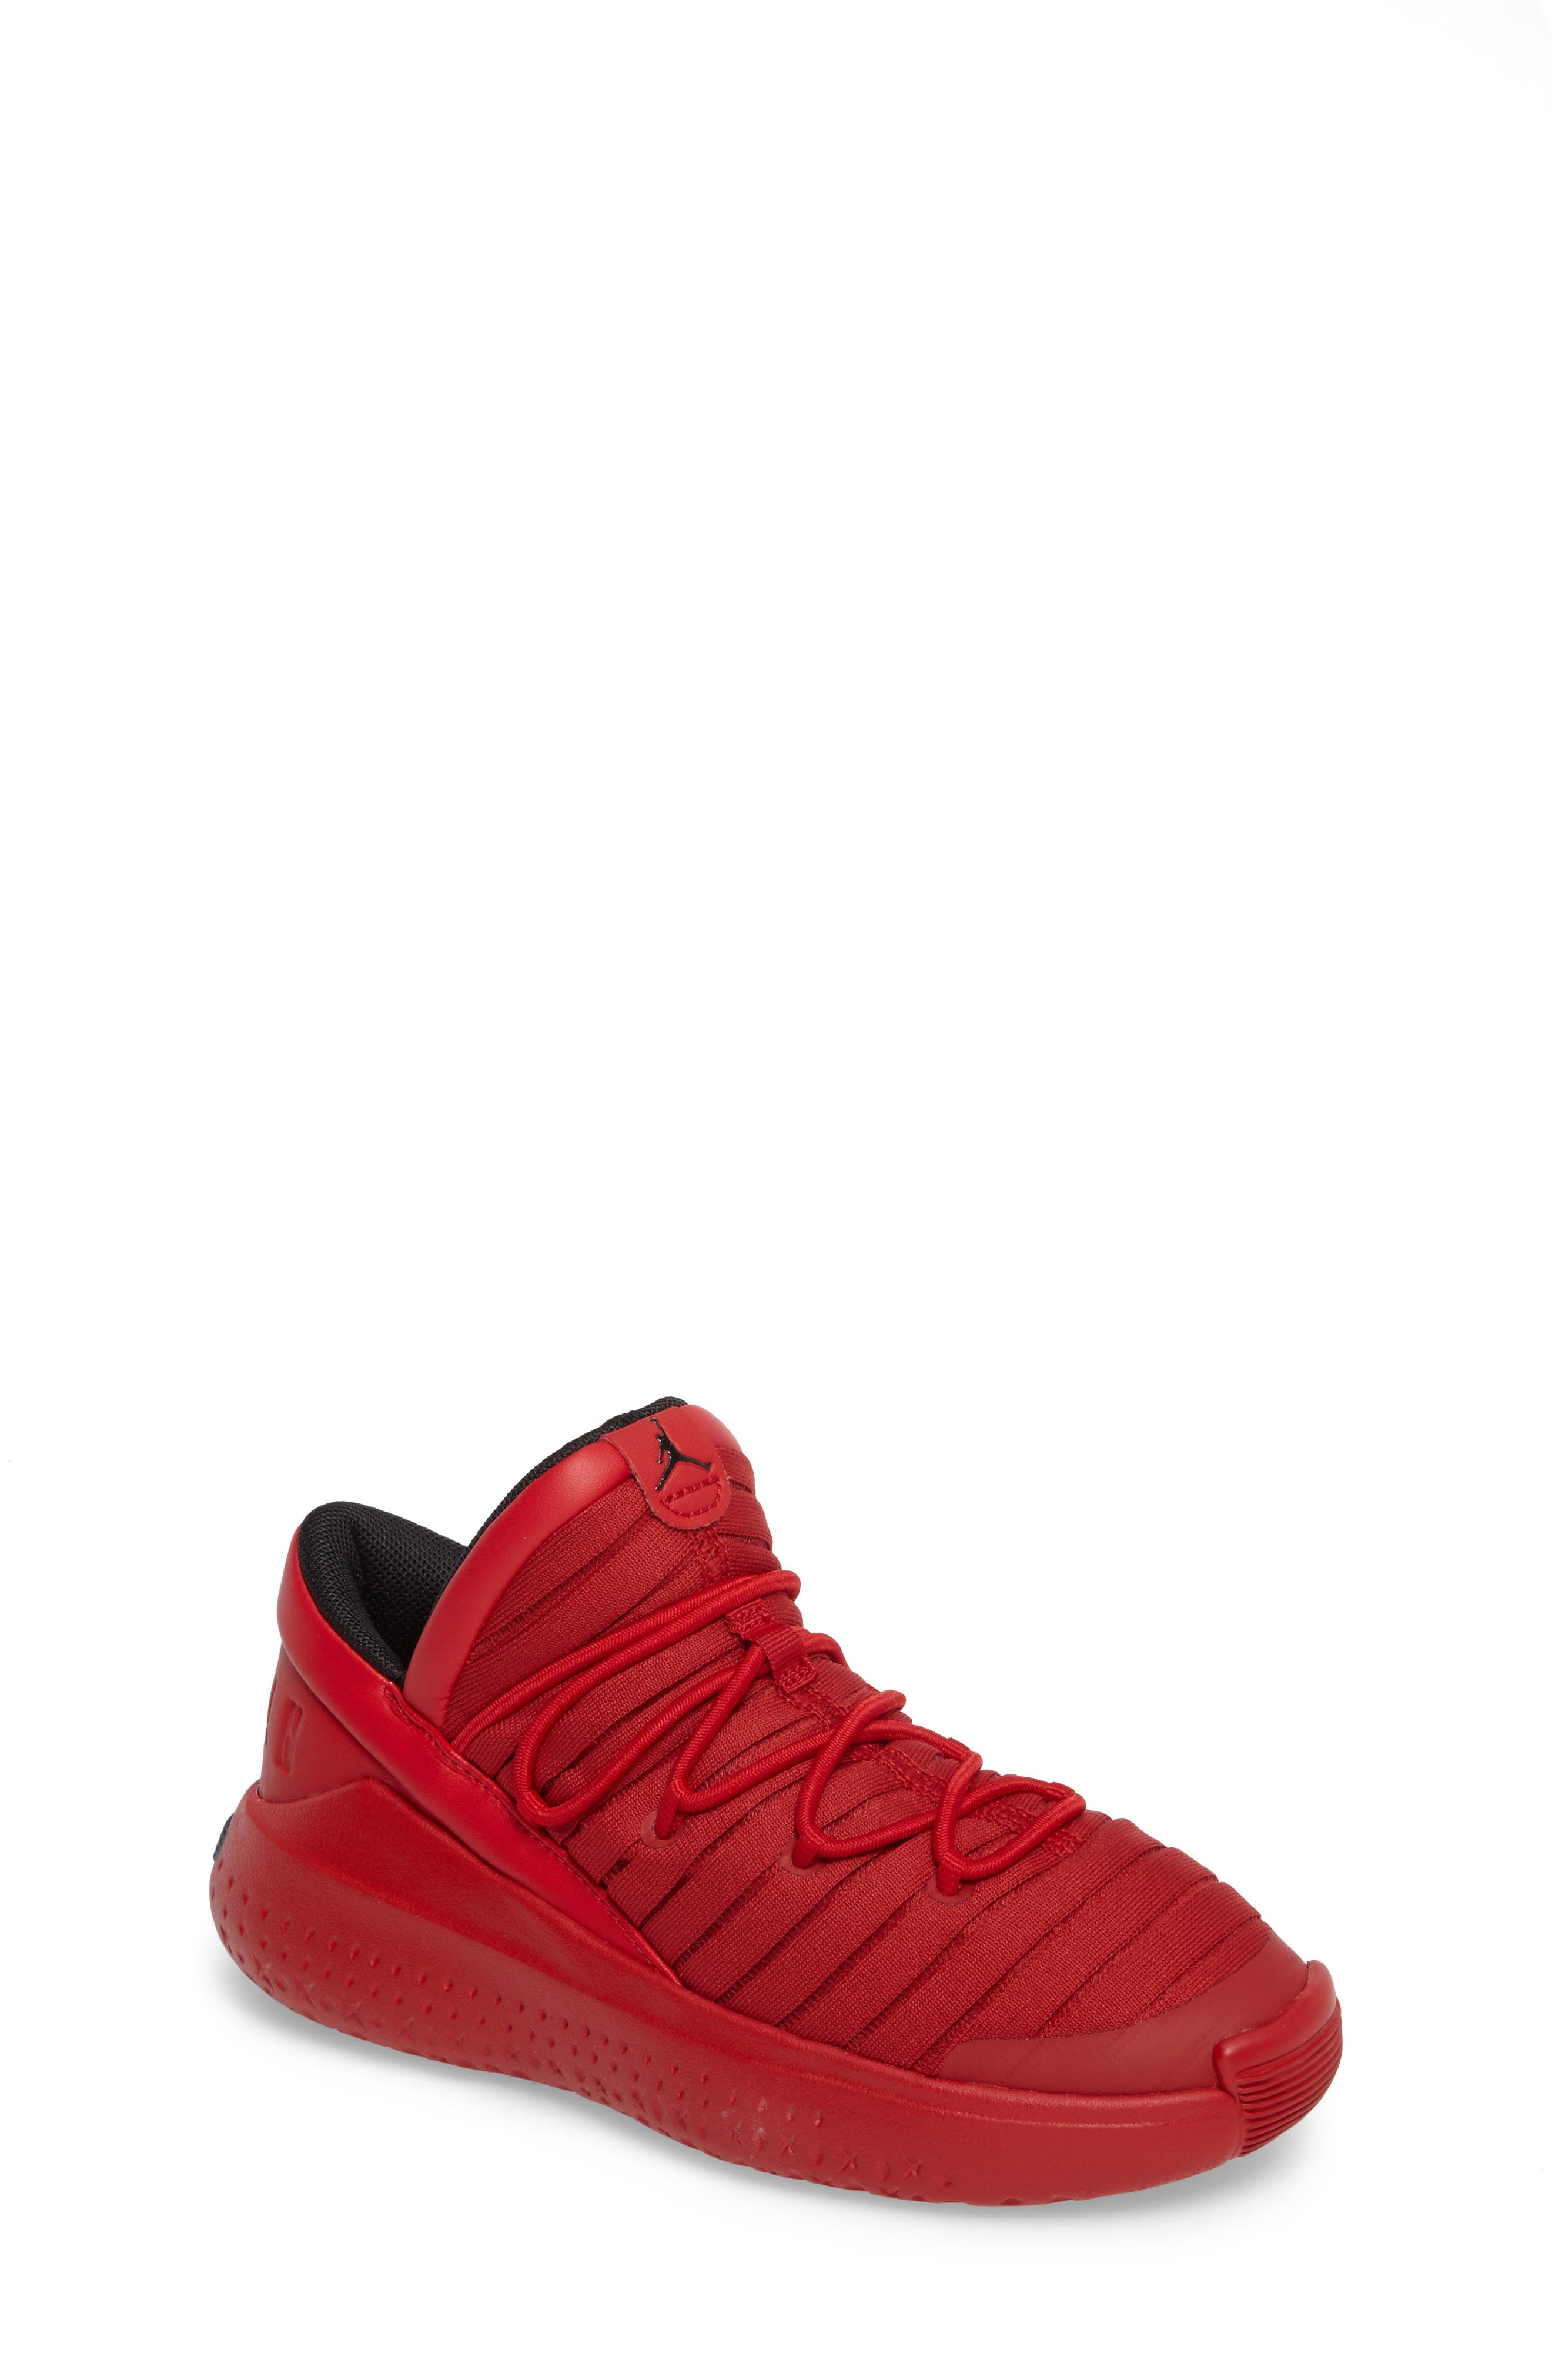 Flight Luxe Sneaker,                             Main thumbnail 1, color,                             Gym Red/ Black